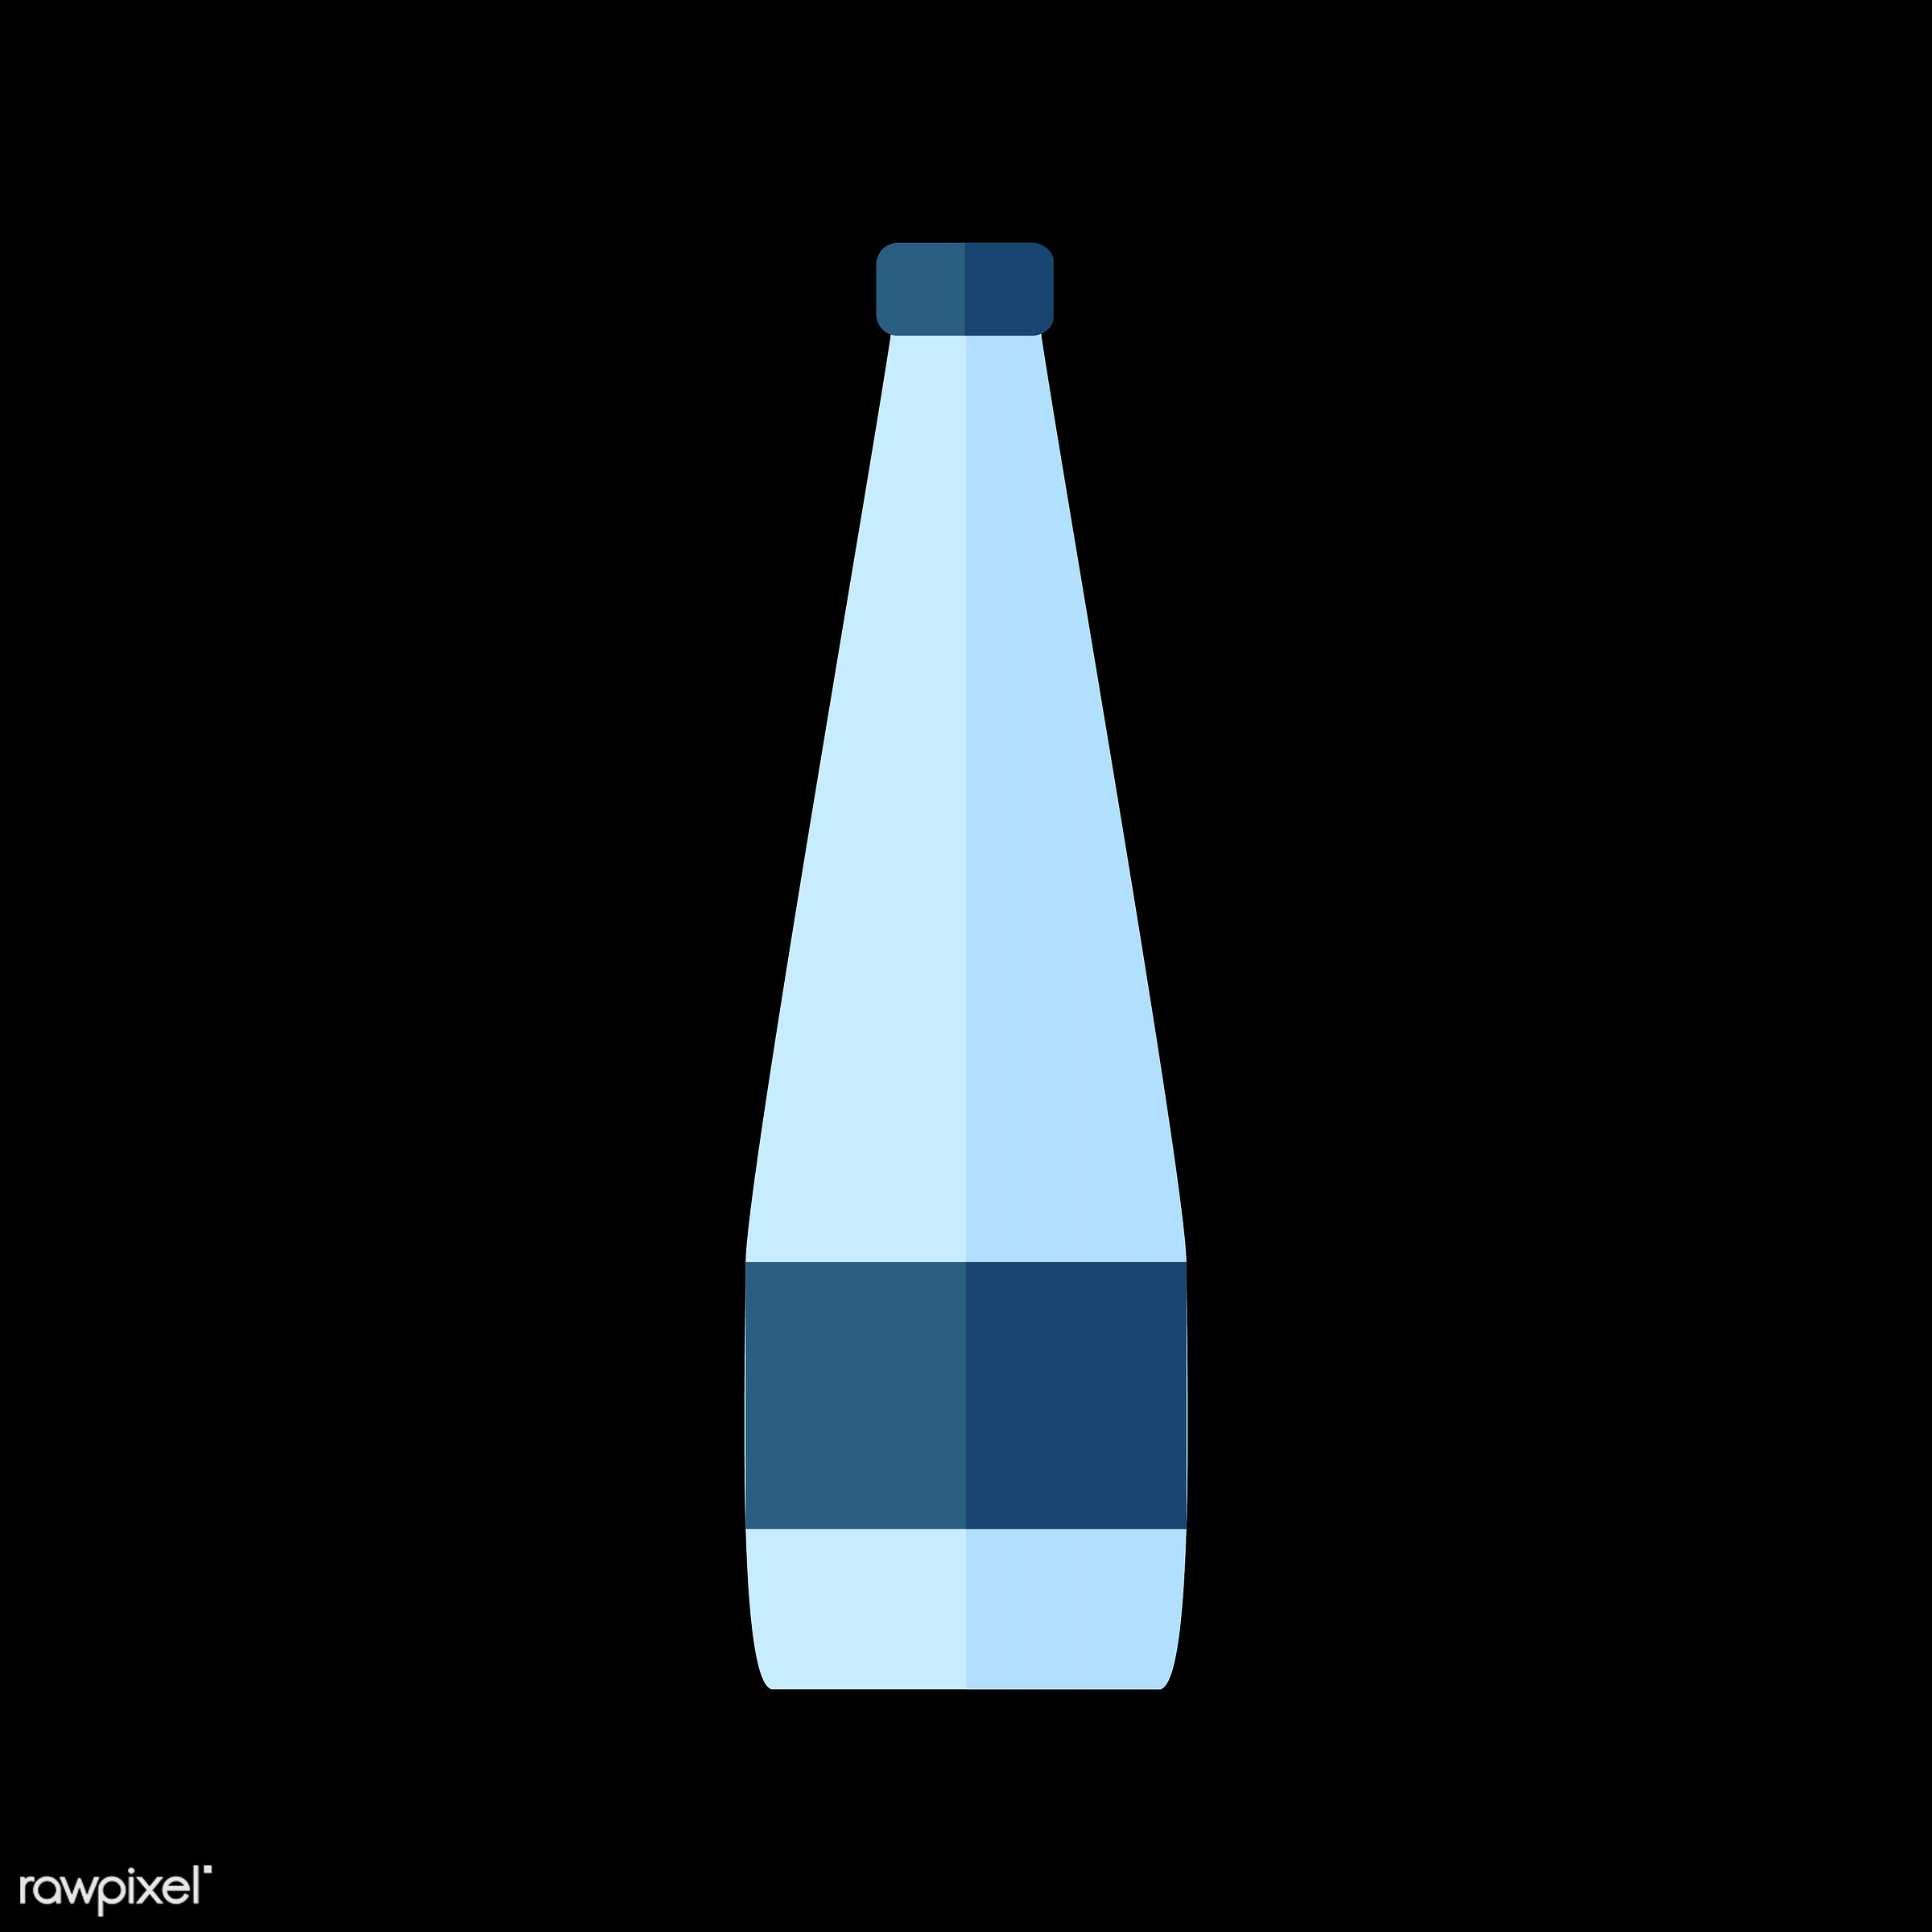 vector, graphic, illustration, icon, symbol, colorful, cute, drink, beverage, water, water bottle, glass bottle, mineral...